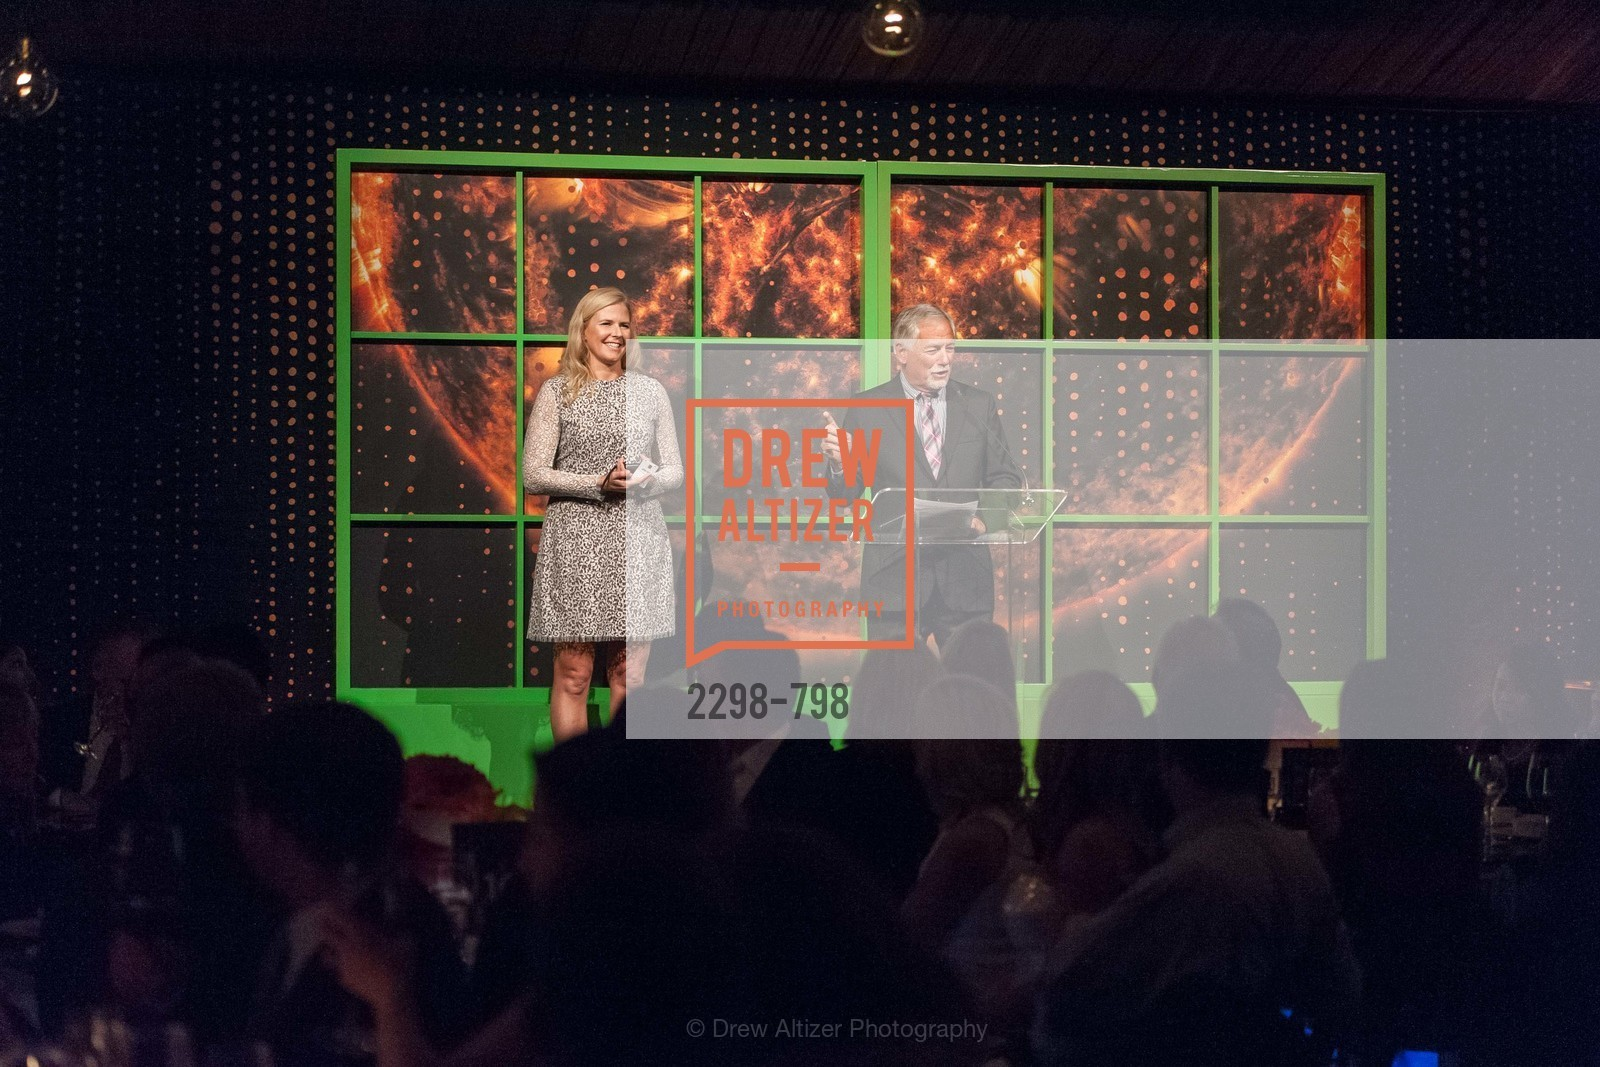 Virginia Tusher, Mark Buell, CALIFORNIA ACADEMY OF SCIENCES - Big Bang Gala 2015, US, April 23rd, 2015,Drew Altizer, Drew Altizer Photography, full-service agency, private events, San Francisco photographer, photographer california